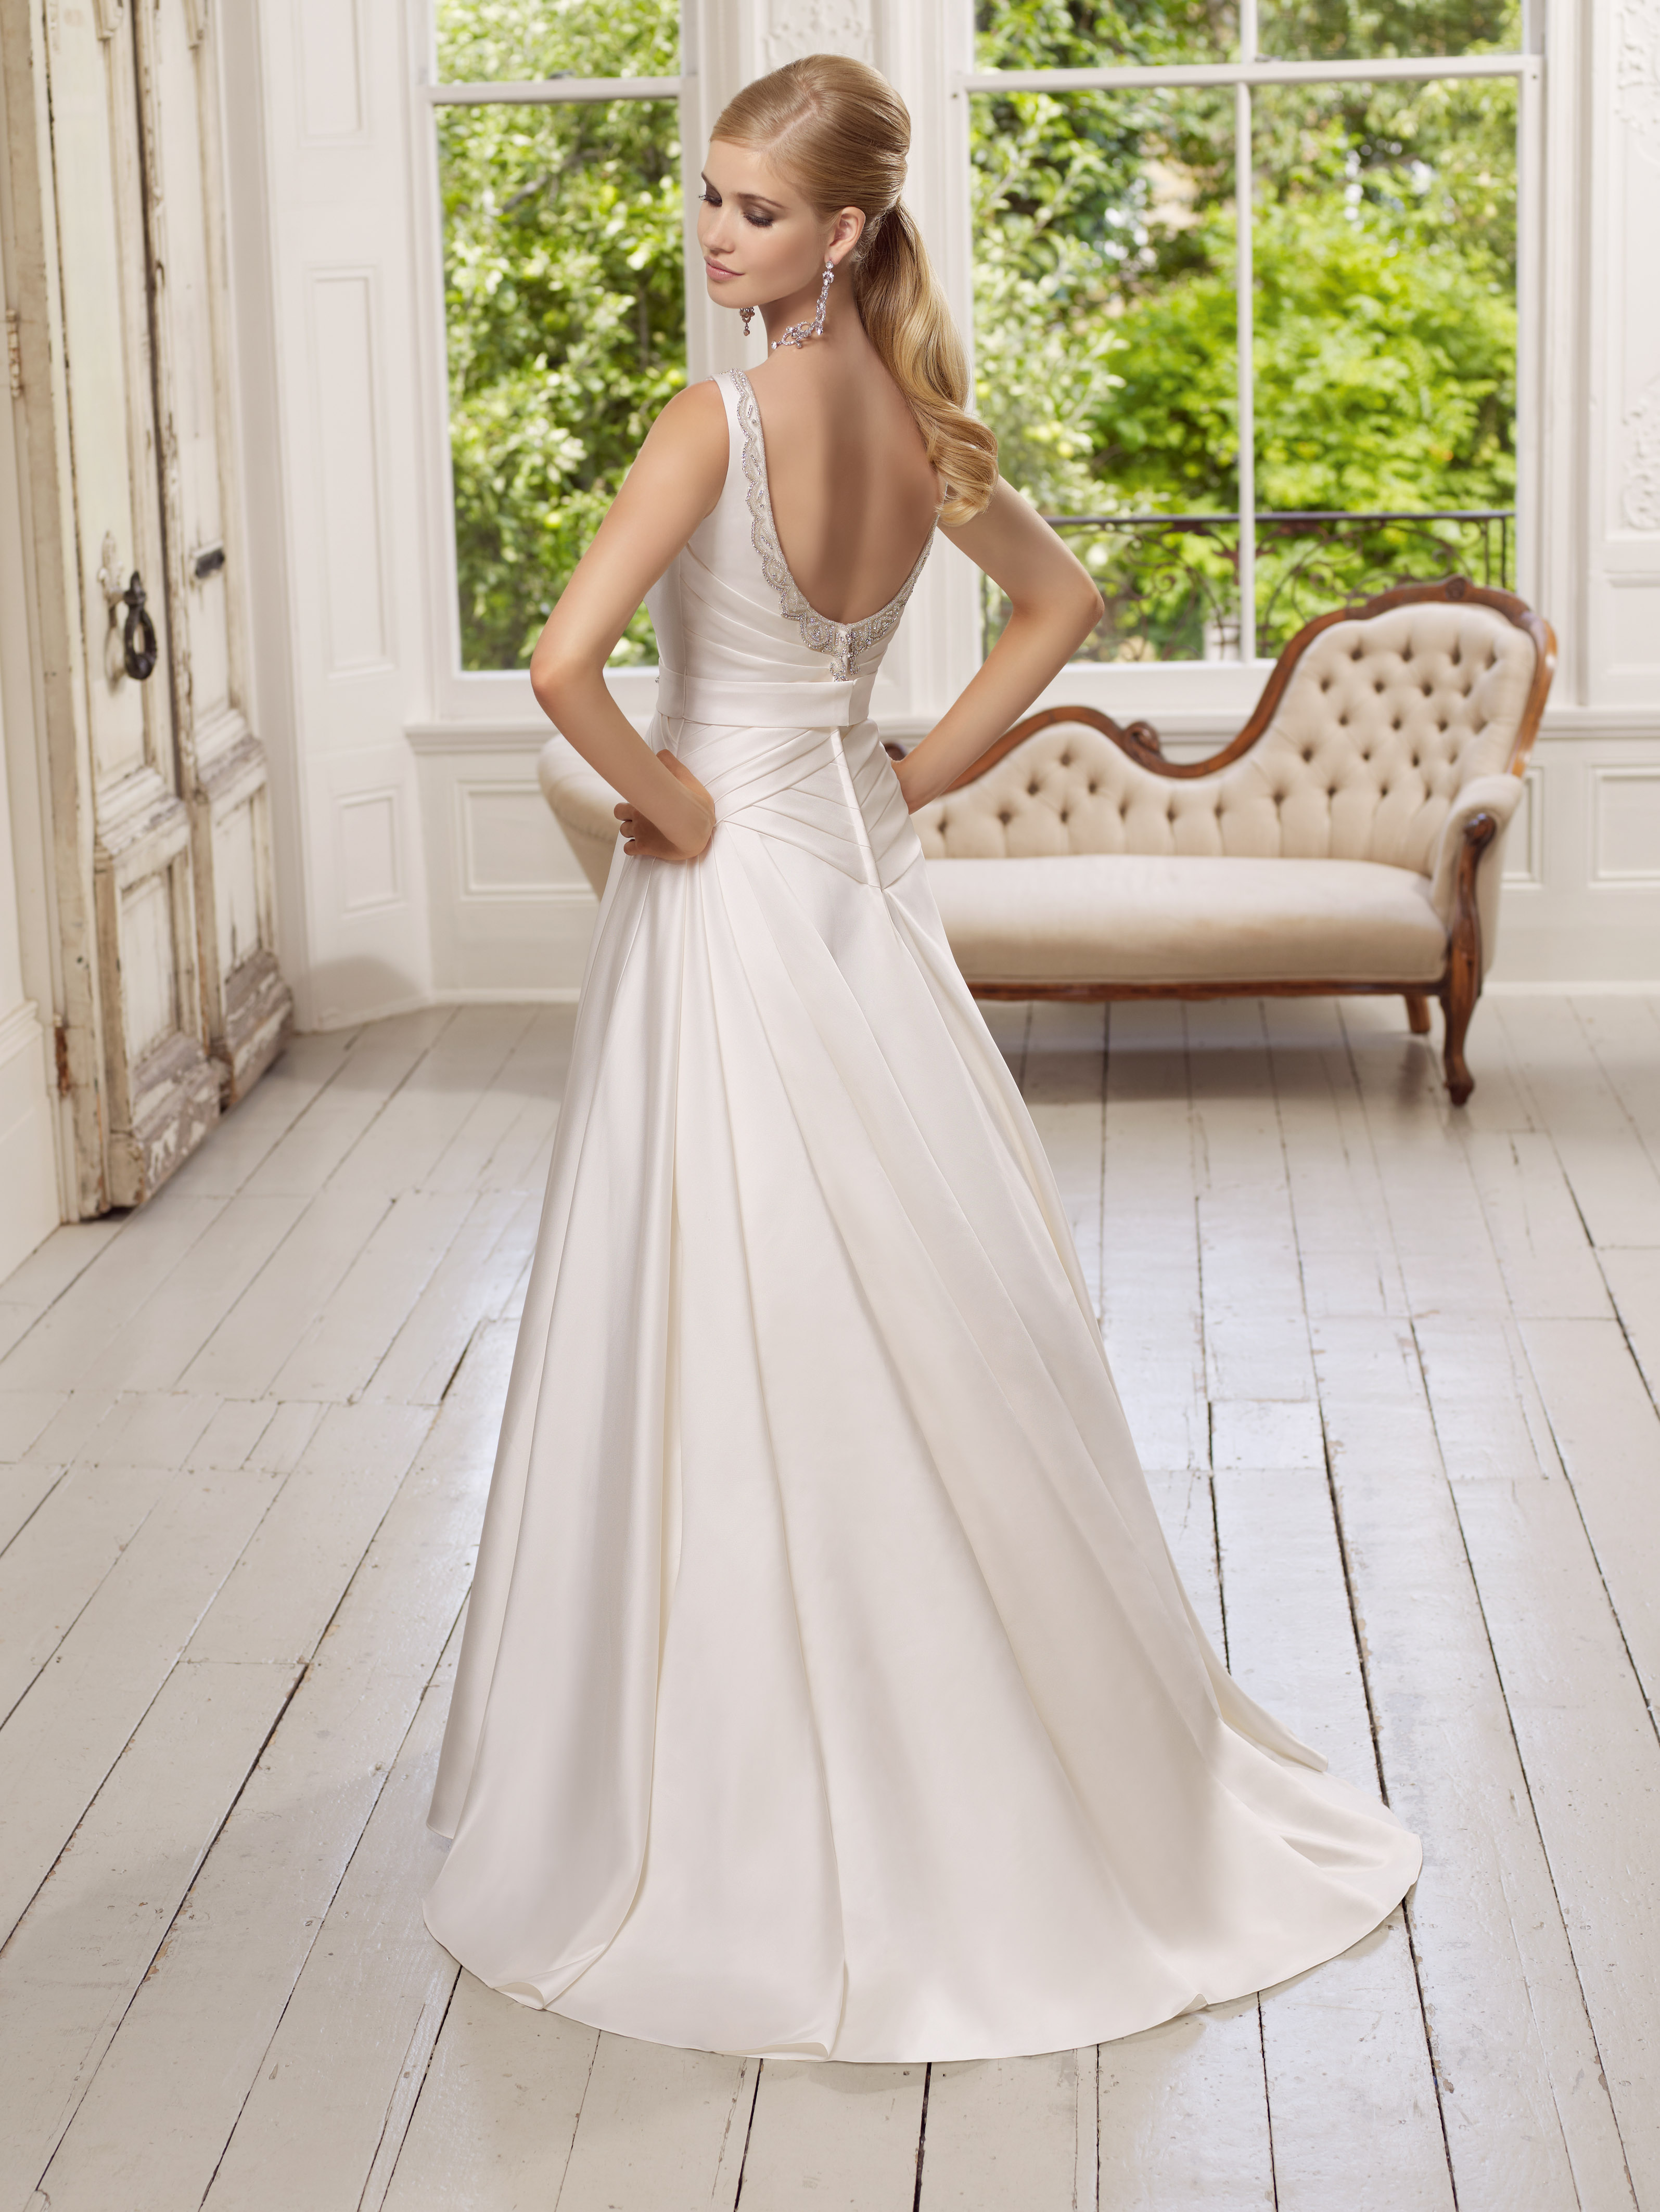 Ronald joyce 64018 diamond colins bridal for Ronald joyce wedding dresses prices